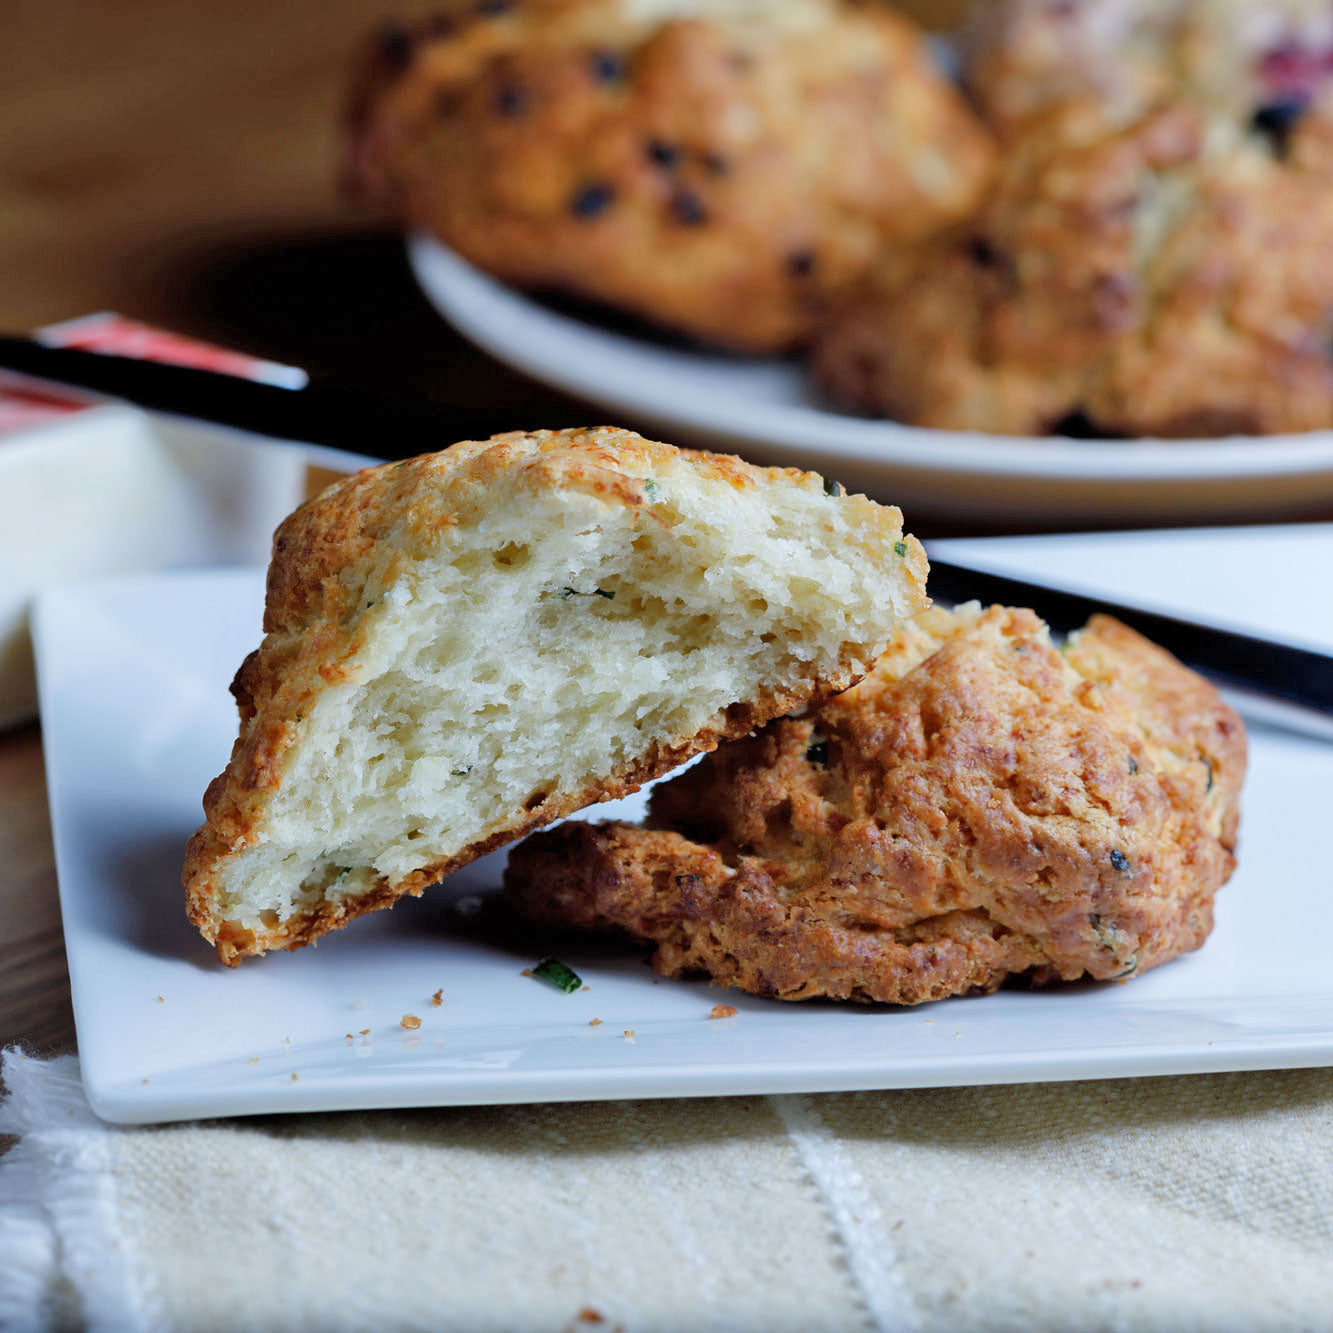 Cheddar Chive Scone from Noe Valley Bakery